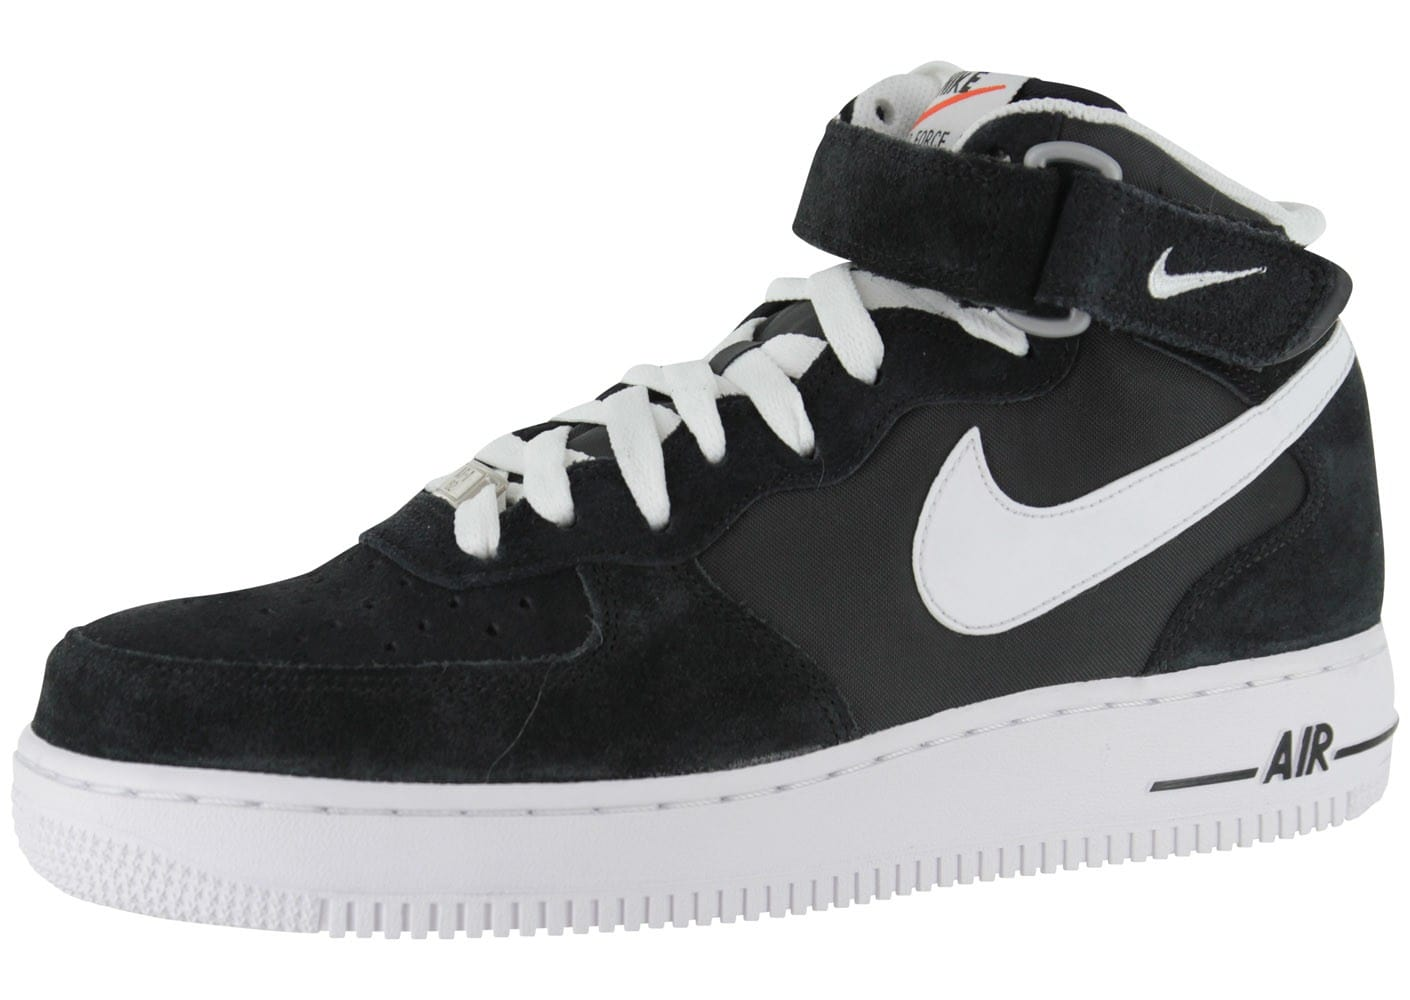 nike air force 1 mid blazer noire chaussures homme chausport. Black Bedroom Furniture Sets. Home Design Ideas